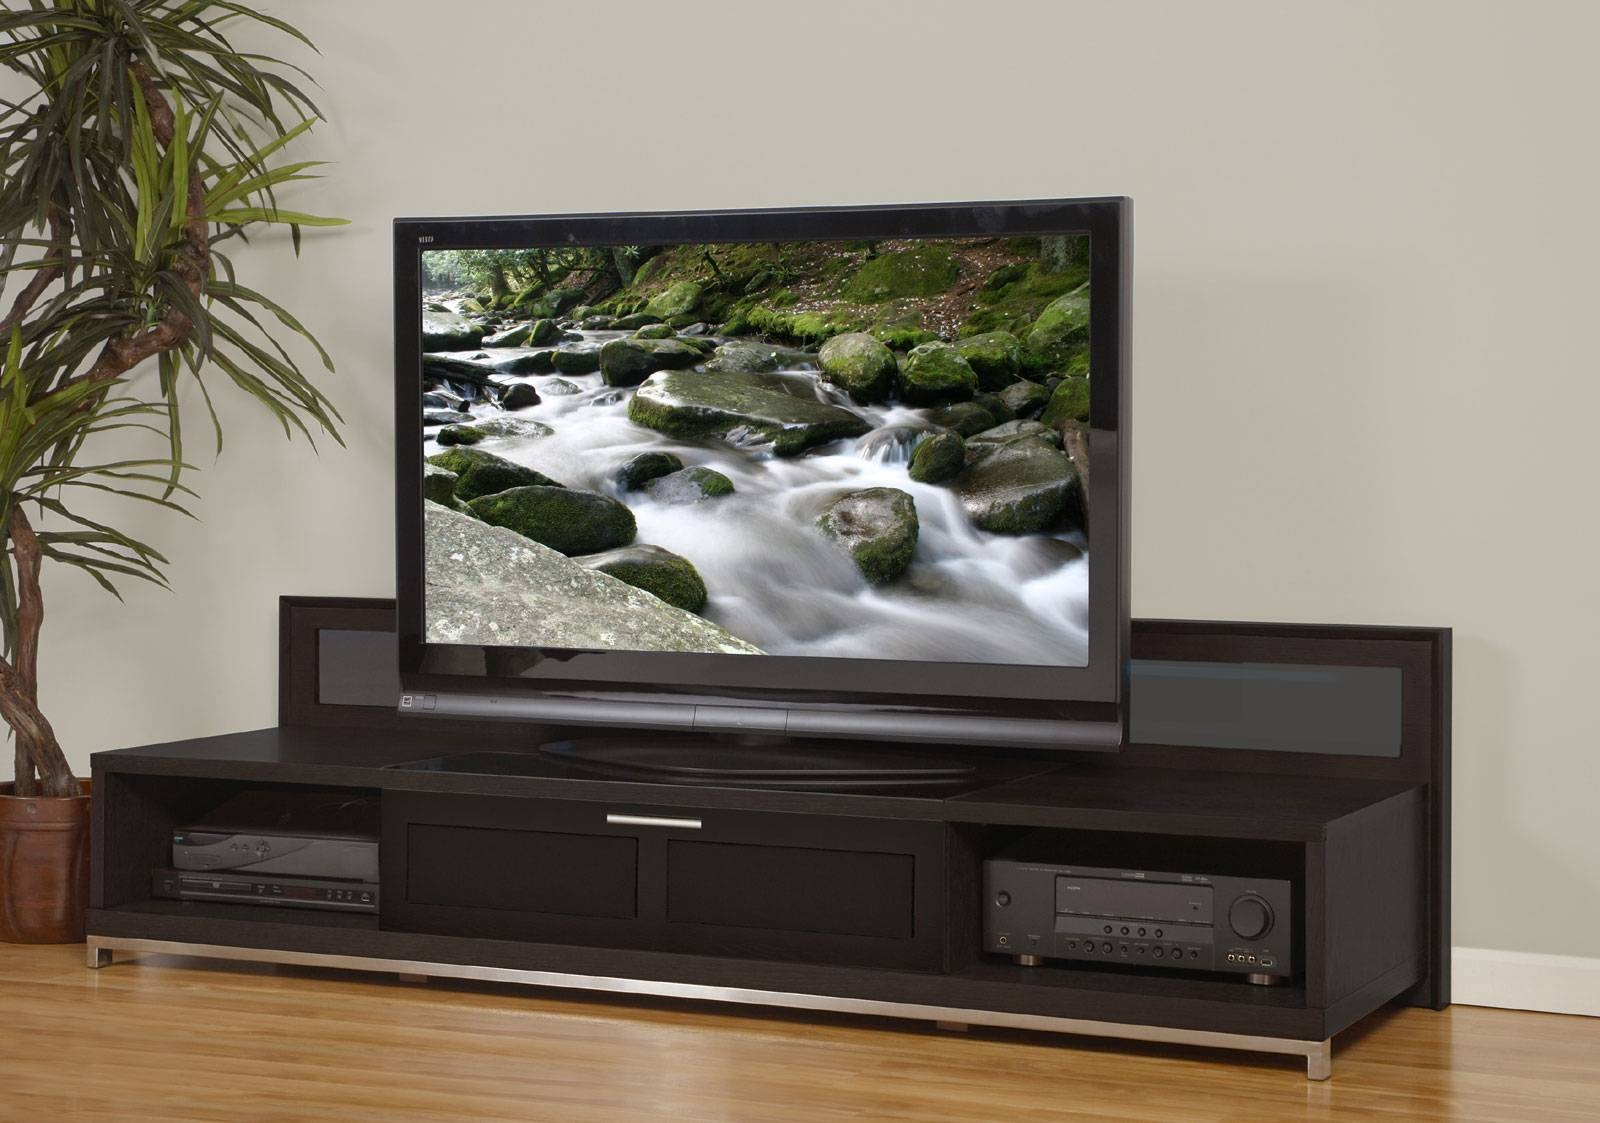 Tv Stands For 55 Inch Flat Screen with regard to Corner Tv Stands For 60 Inch Flat Screens (Image 14 of 15)